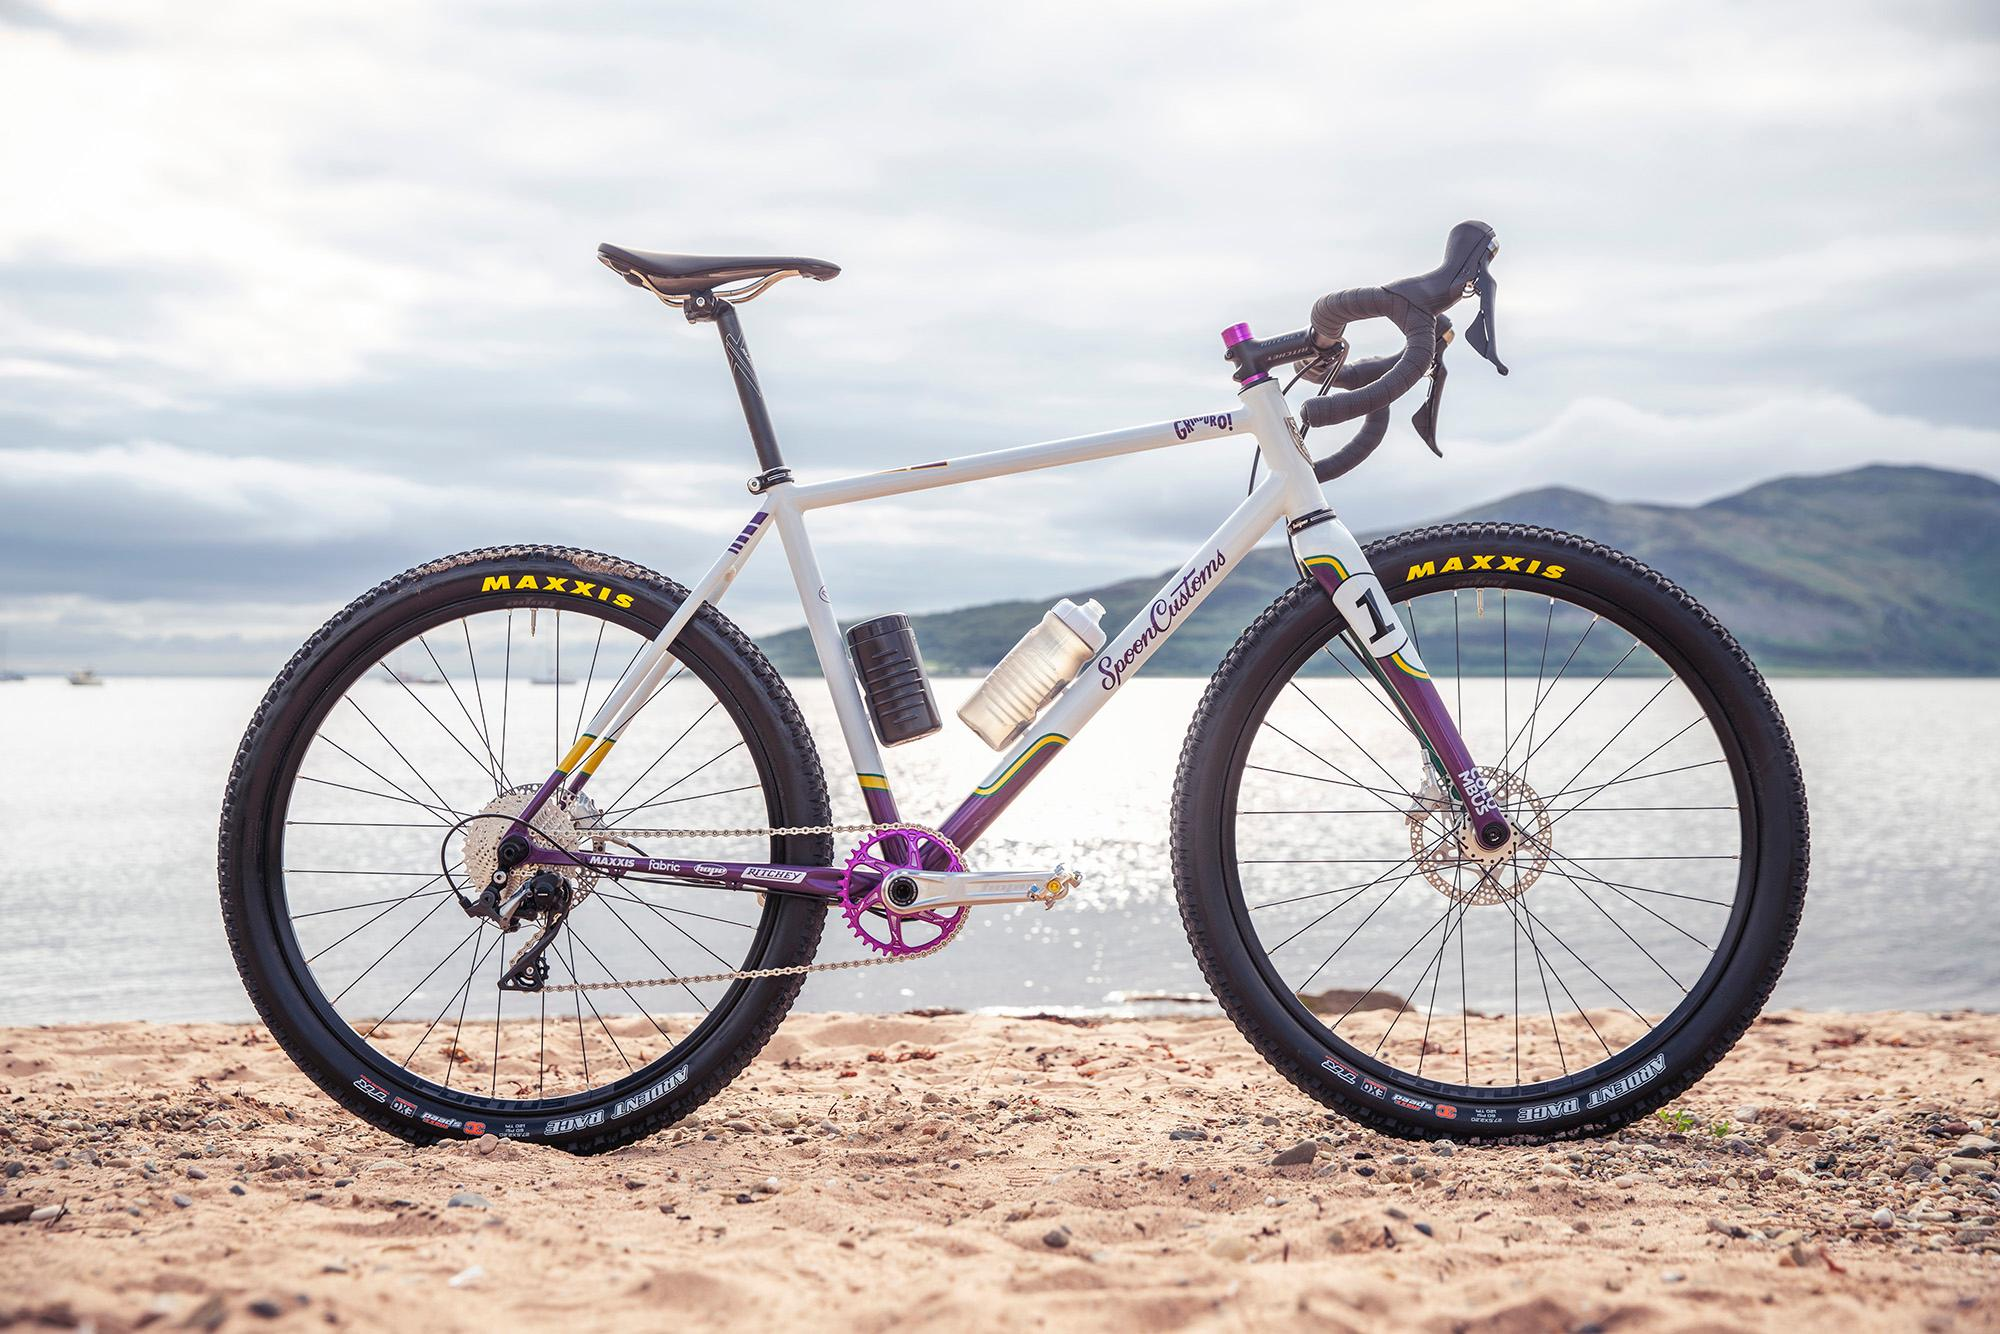 Grinduro custom build by Spoon Customs.Grinduro, Isle of Arran, Scotland, 13 July 2019